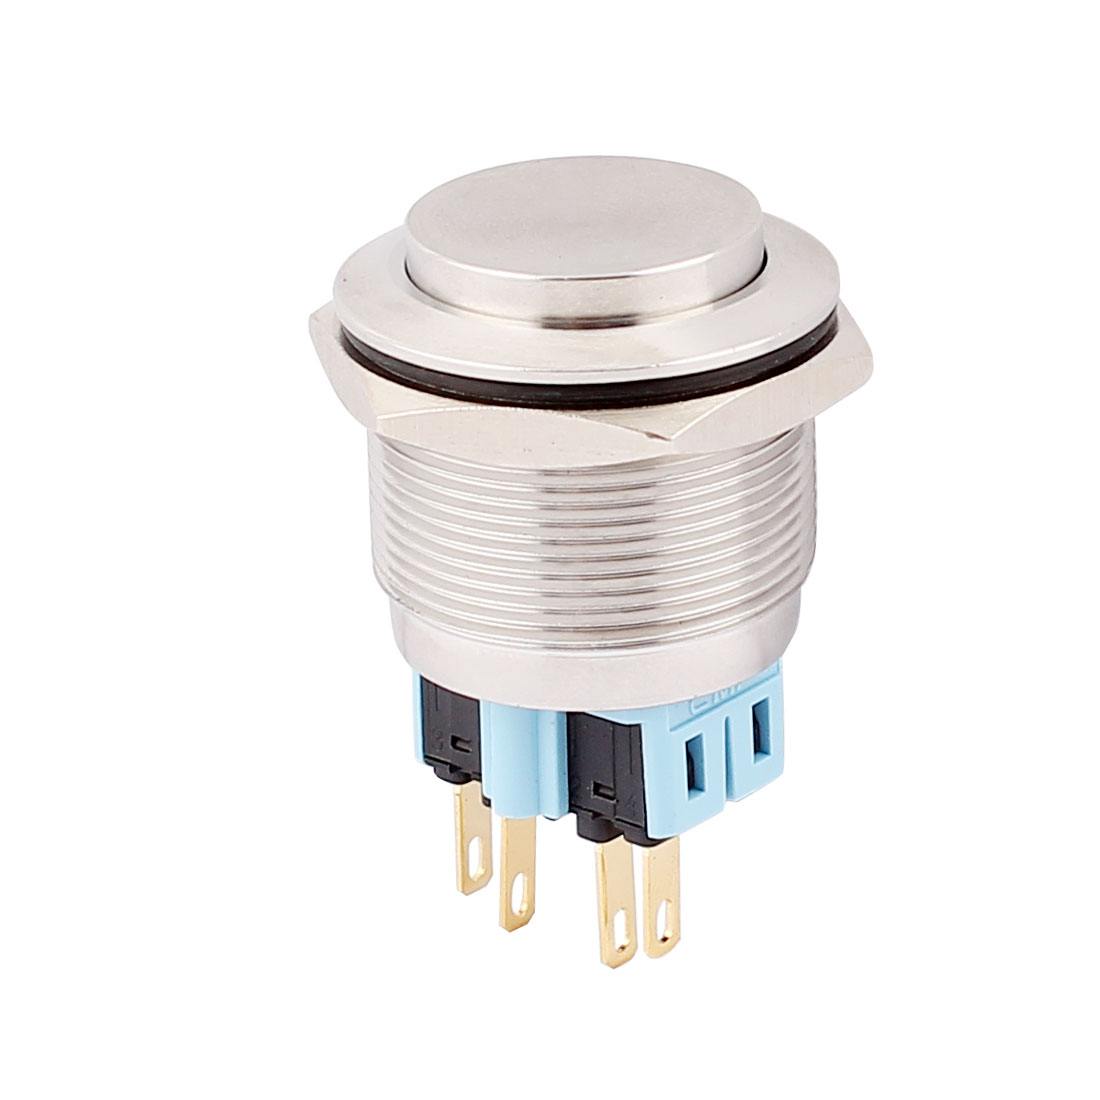 25mm Mounted Thread 4 Pins DPST High Head Momentary Push Button Switch